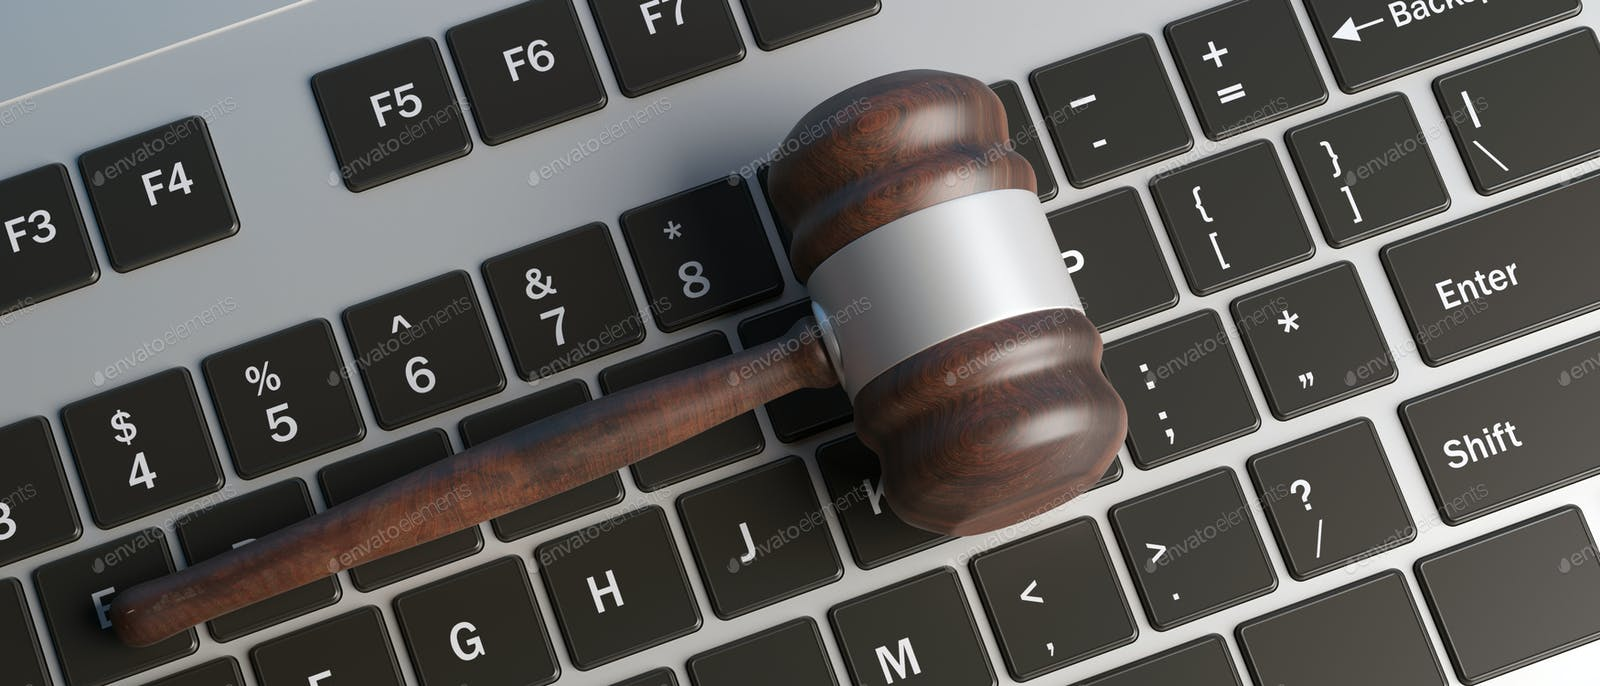 Cyber Crime Concept Law Gavel On Computer Keyboard Banner Top View 3d Illustration Photo By Rawf8 On Envato Elements